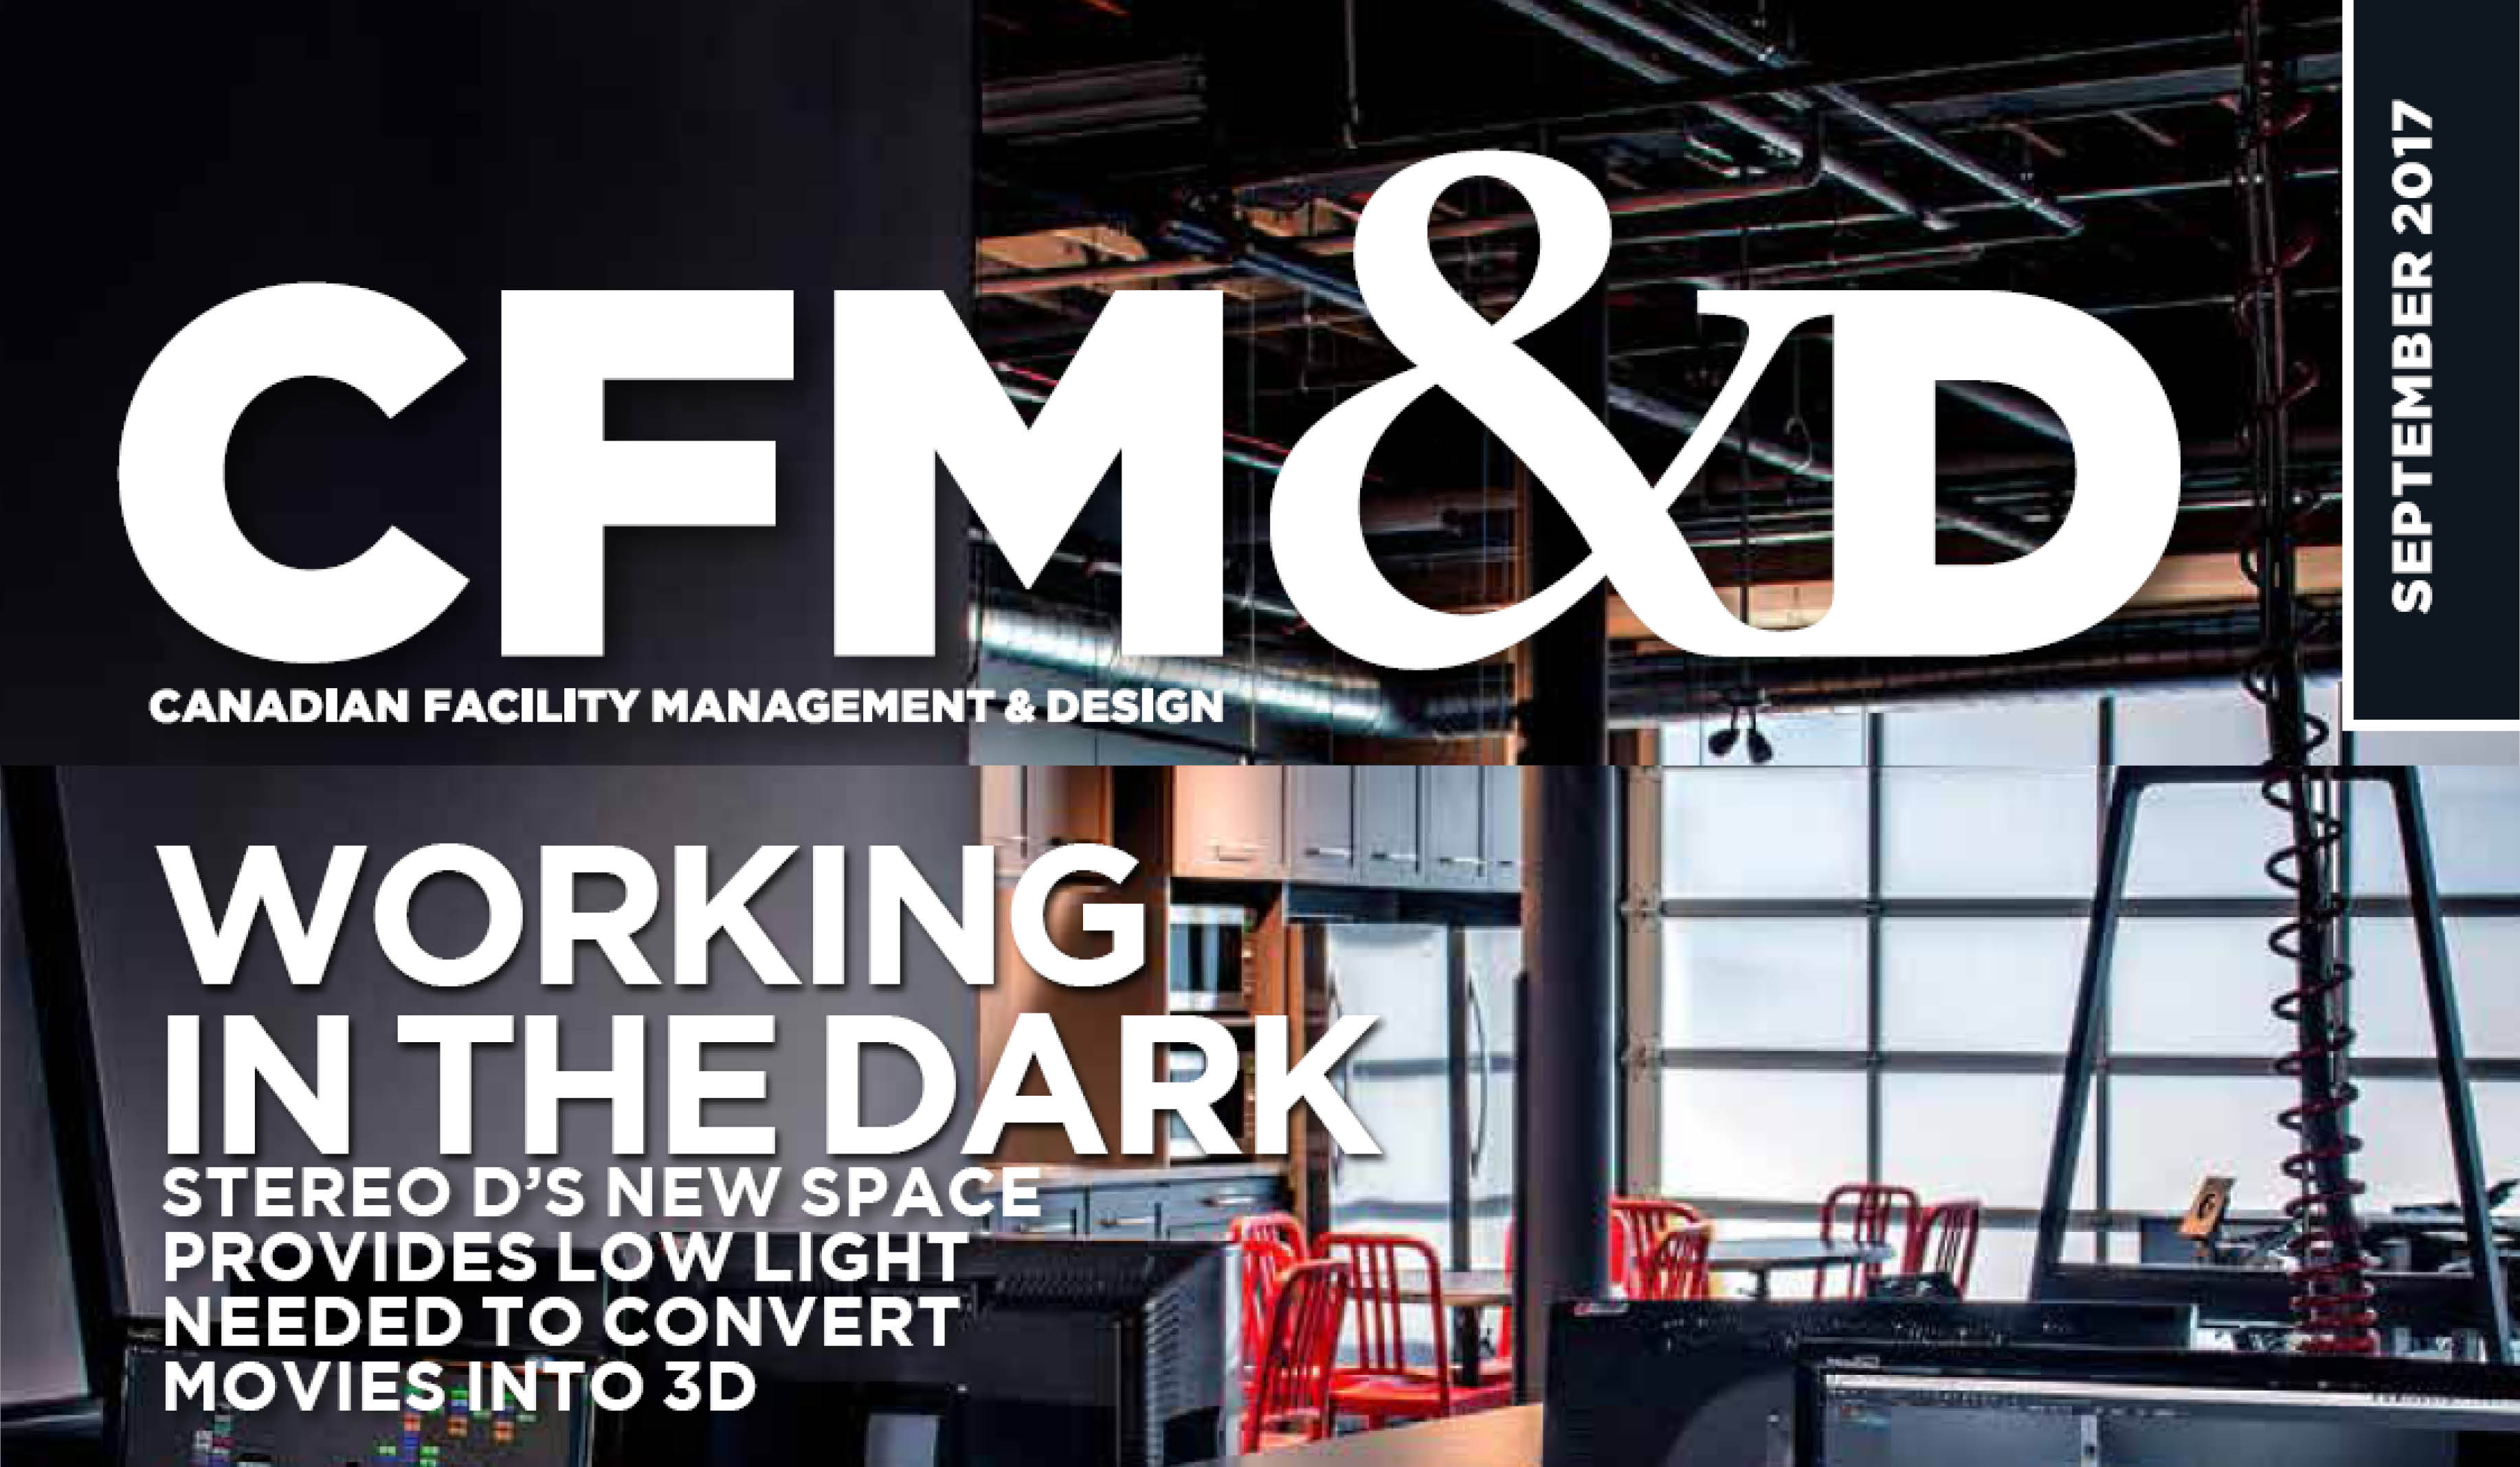 Top half of the CFM&D magazine cover